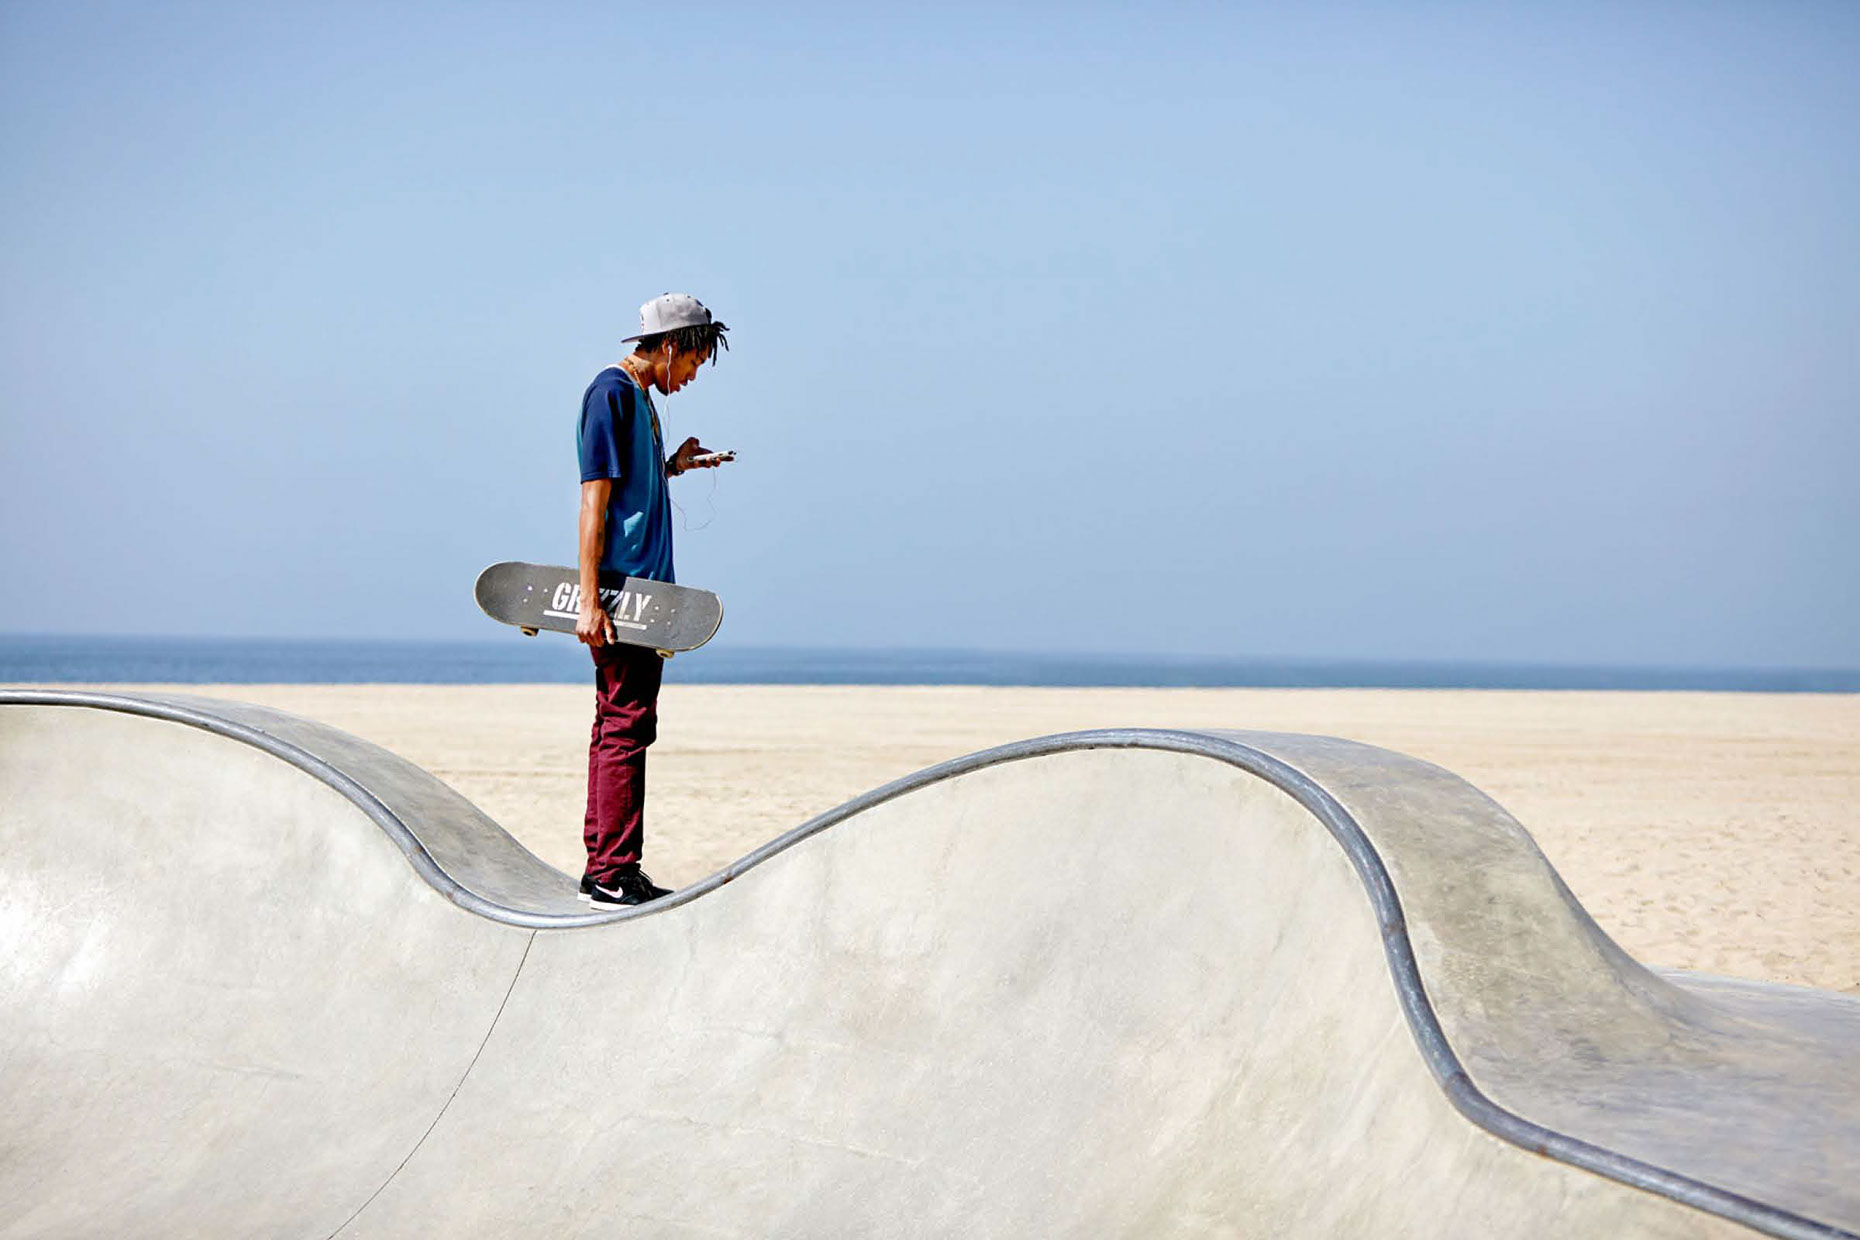 Photography_Lifestyle_Beach Skate Park Kid on Cell Phone-Tony Garcia